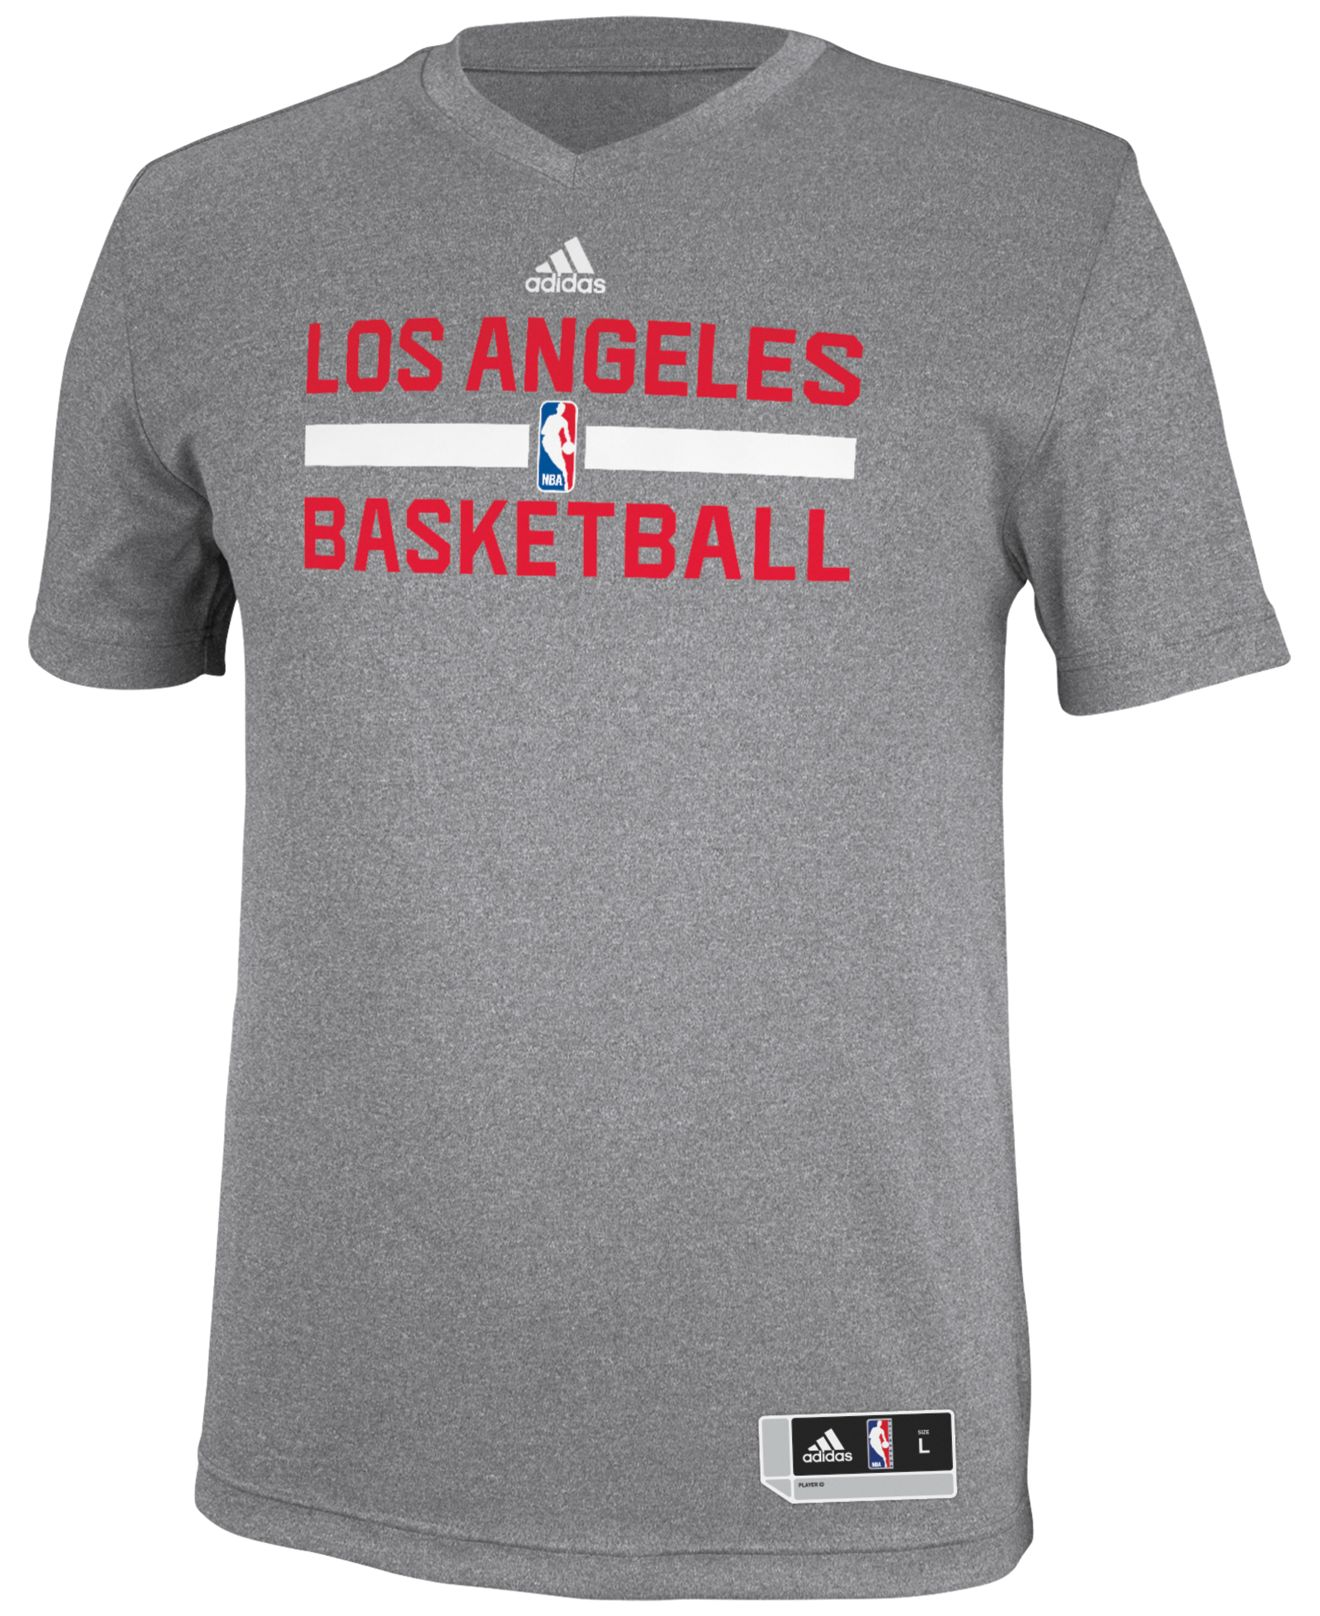 383c34be6 Lyst - Adidas Men s Los Angeles Clippers Practice Graphic T-shirt in ...